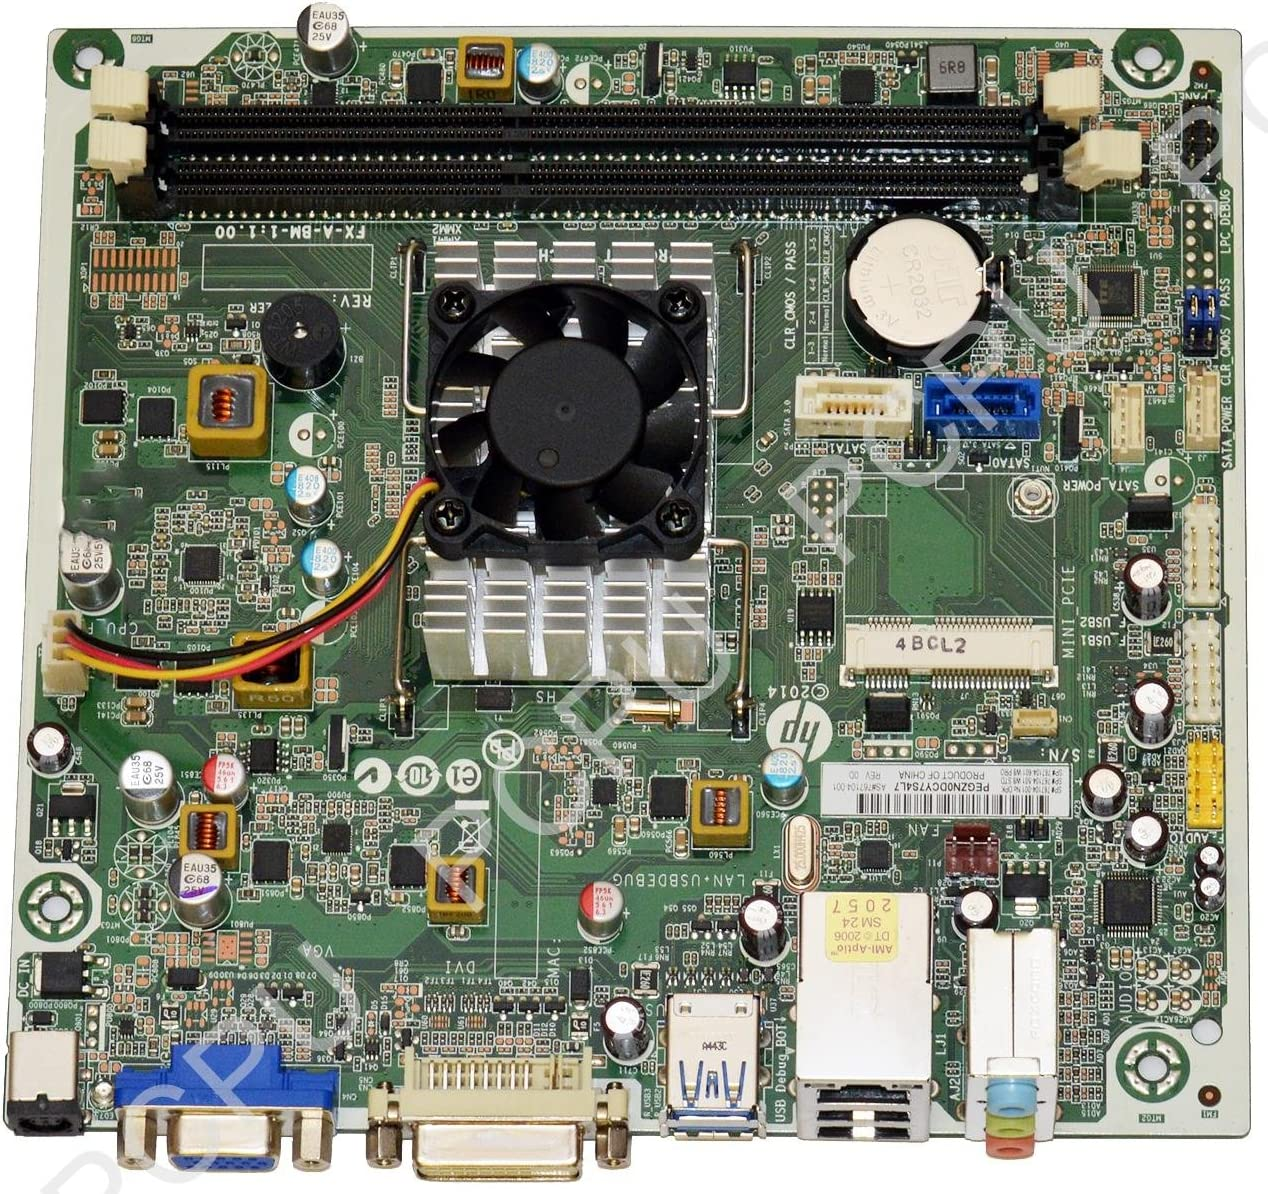 767104-001 HP 110-414 Camphor2 Beema Desktop Motherboard w/ AMD A8-6410 2.0GHz CPU